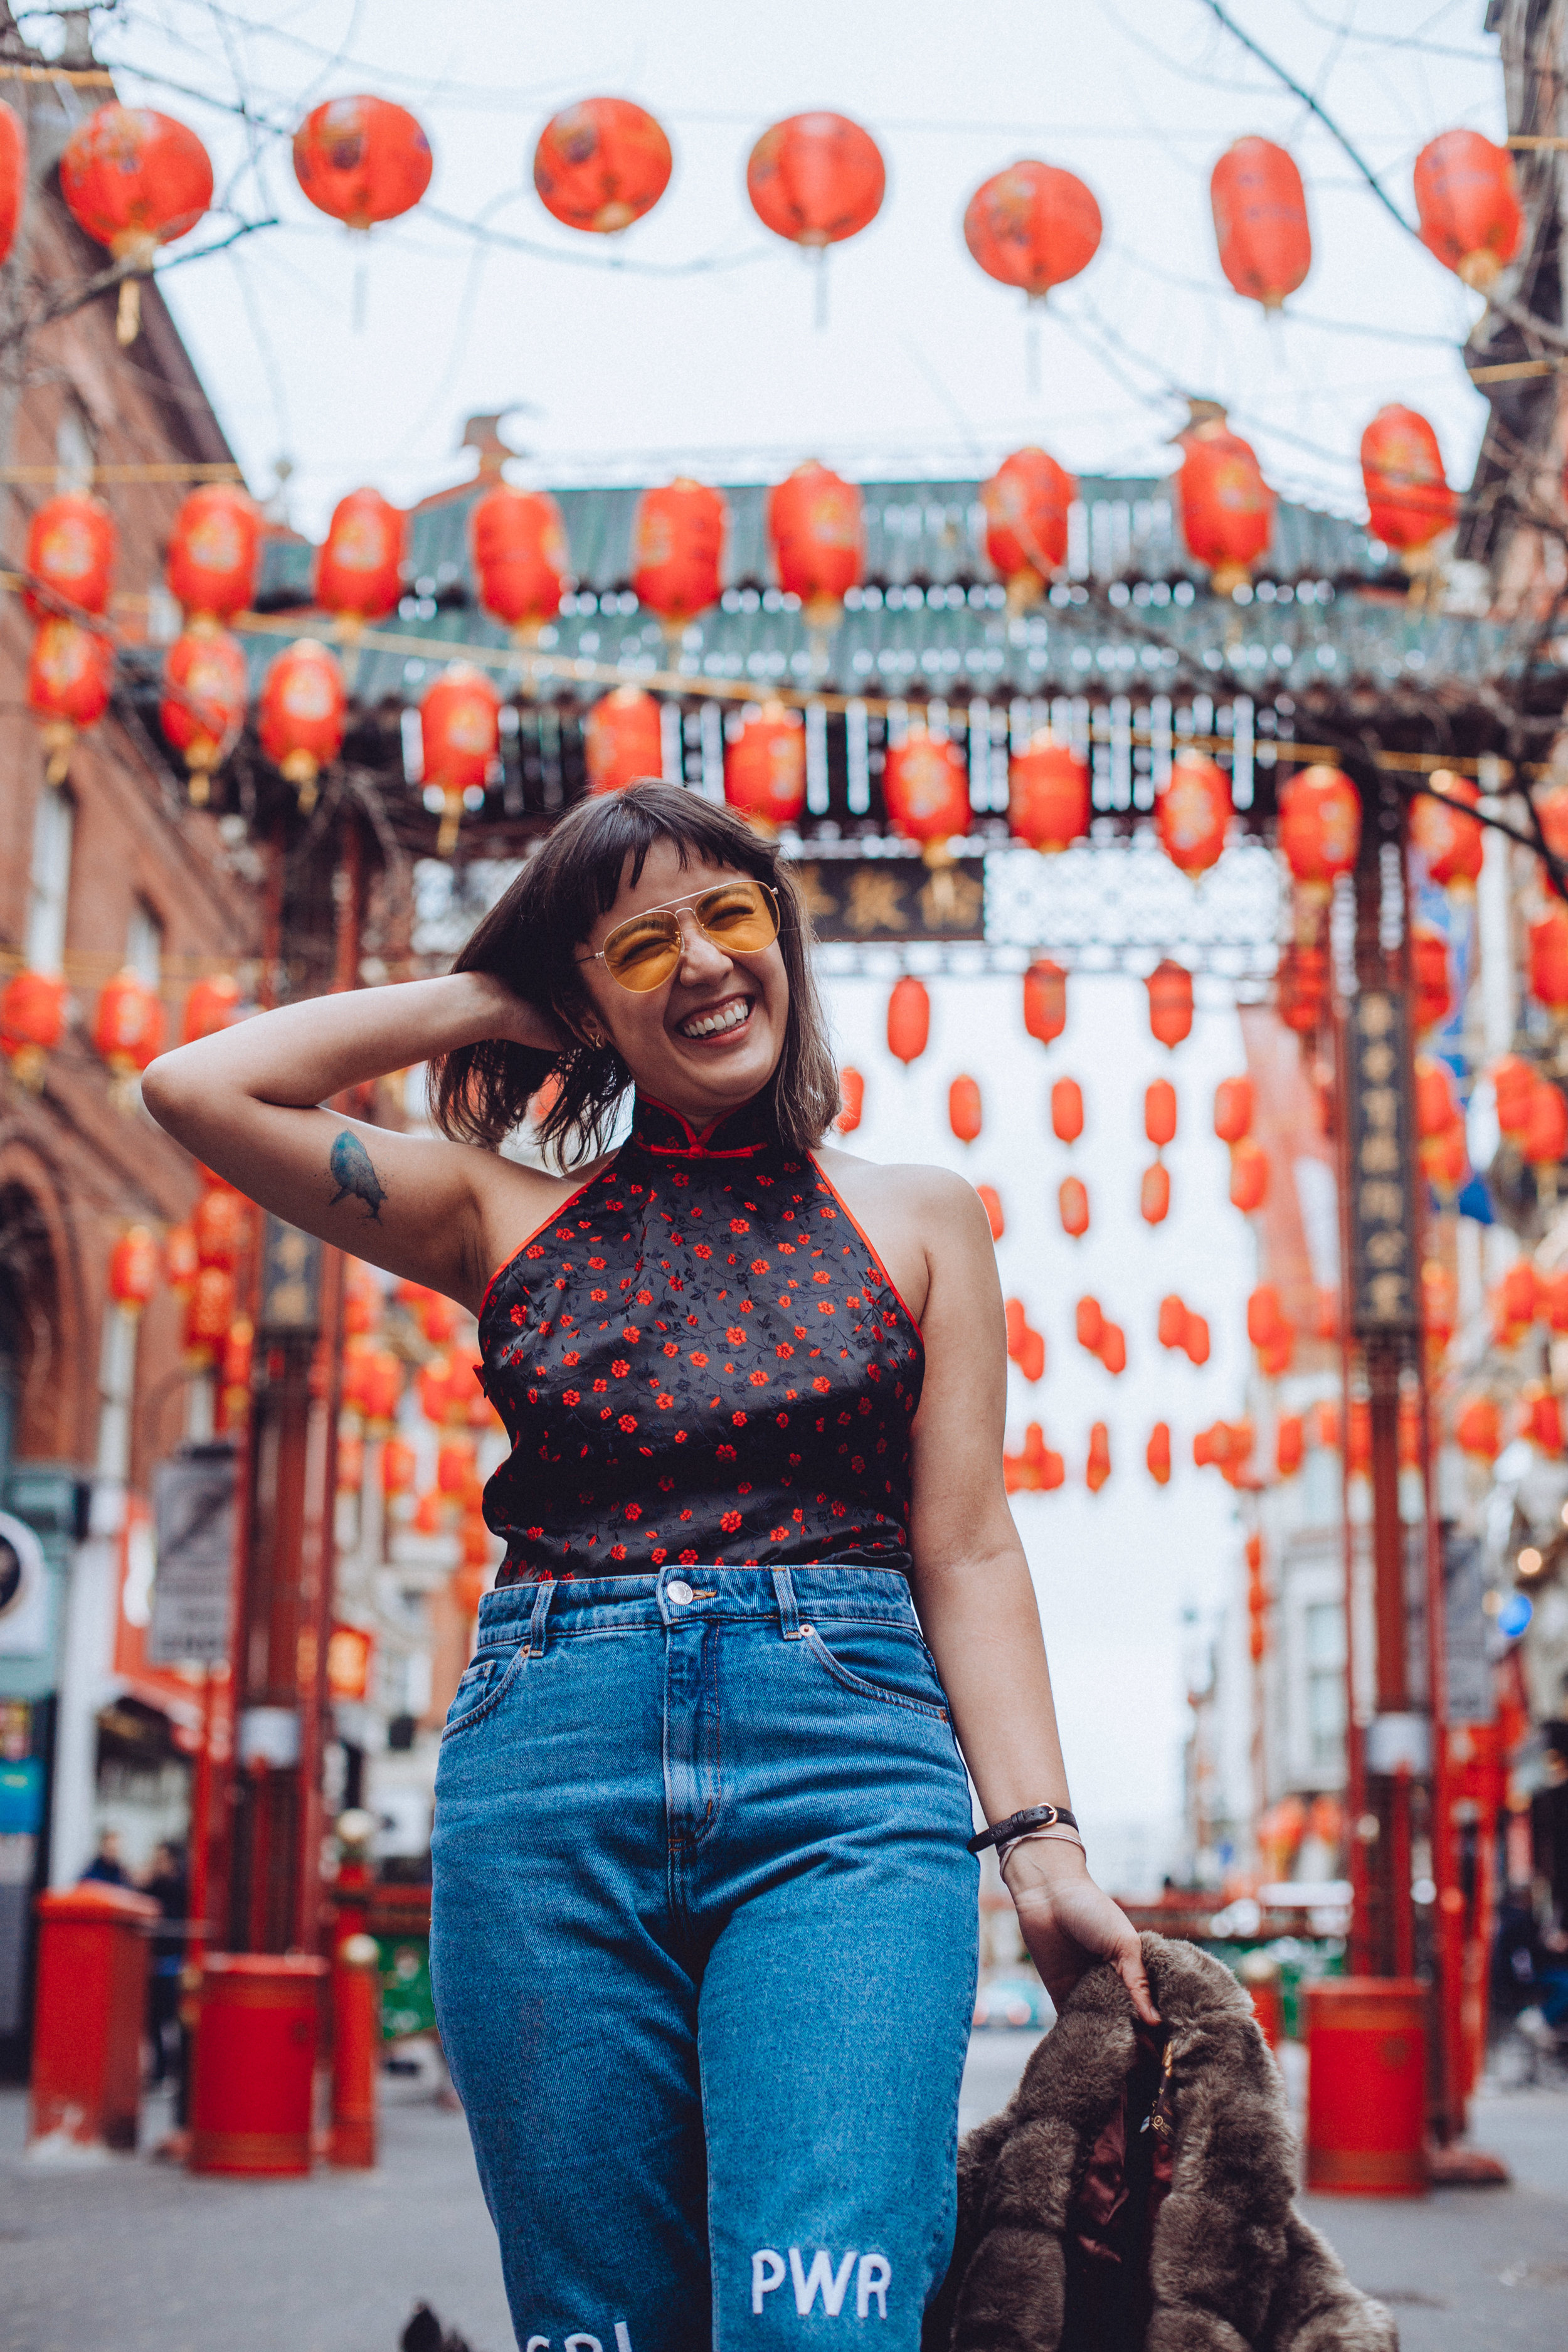 Want more Chinese New Year inspiration? - Check out my last Chinese New Year outfit post, where I dodged tourists and froze to death in a backless qipao.